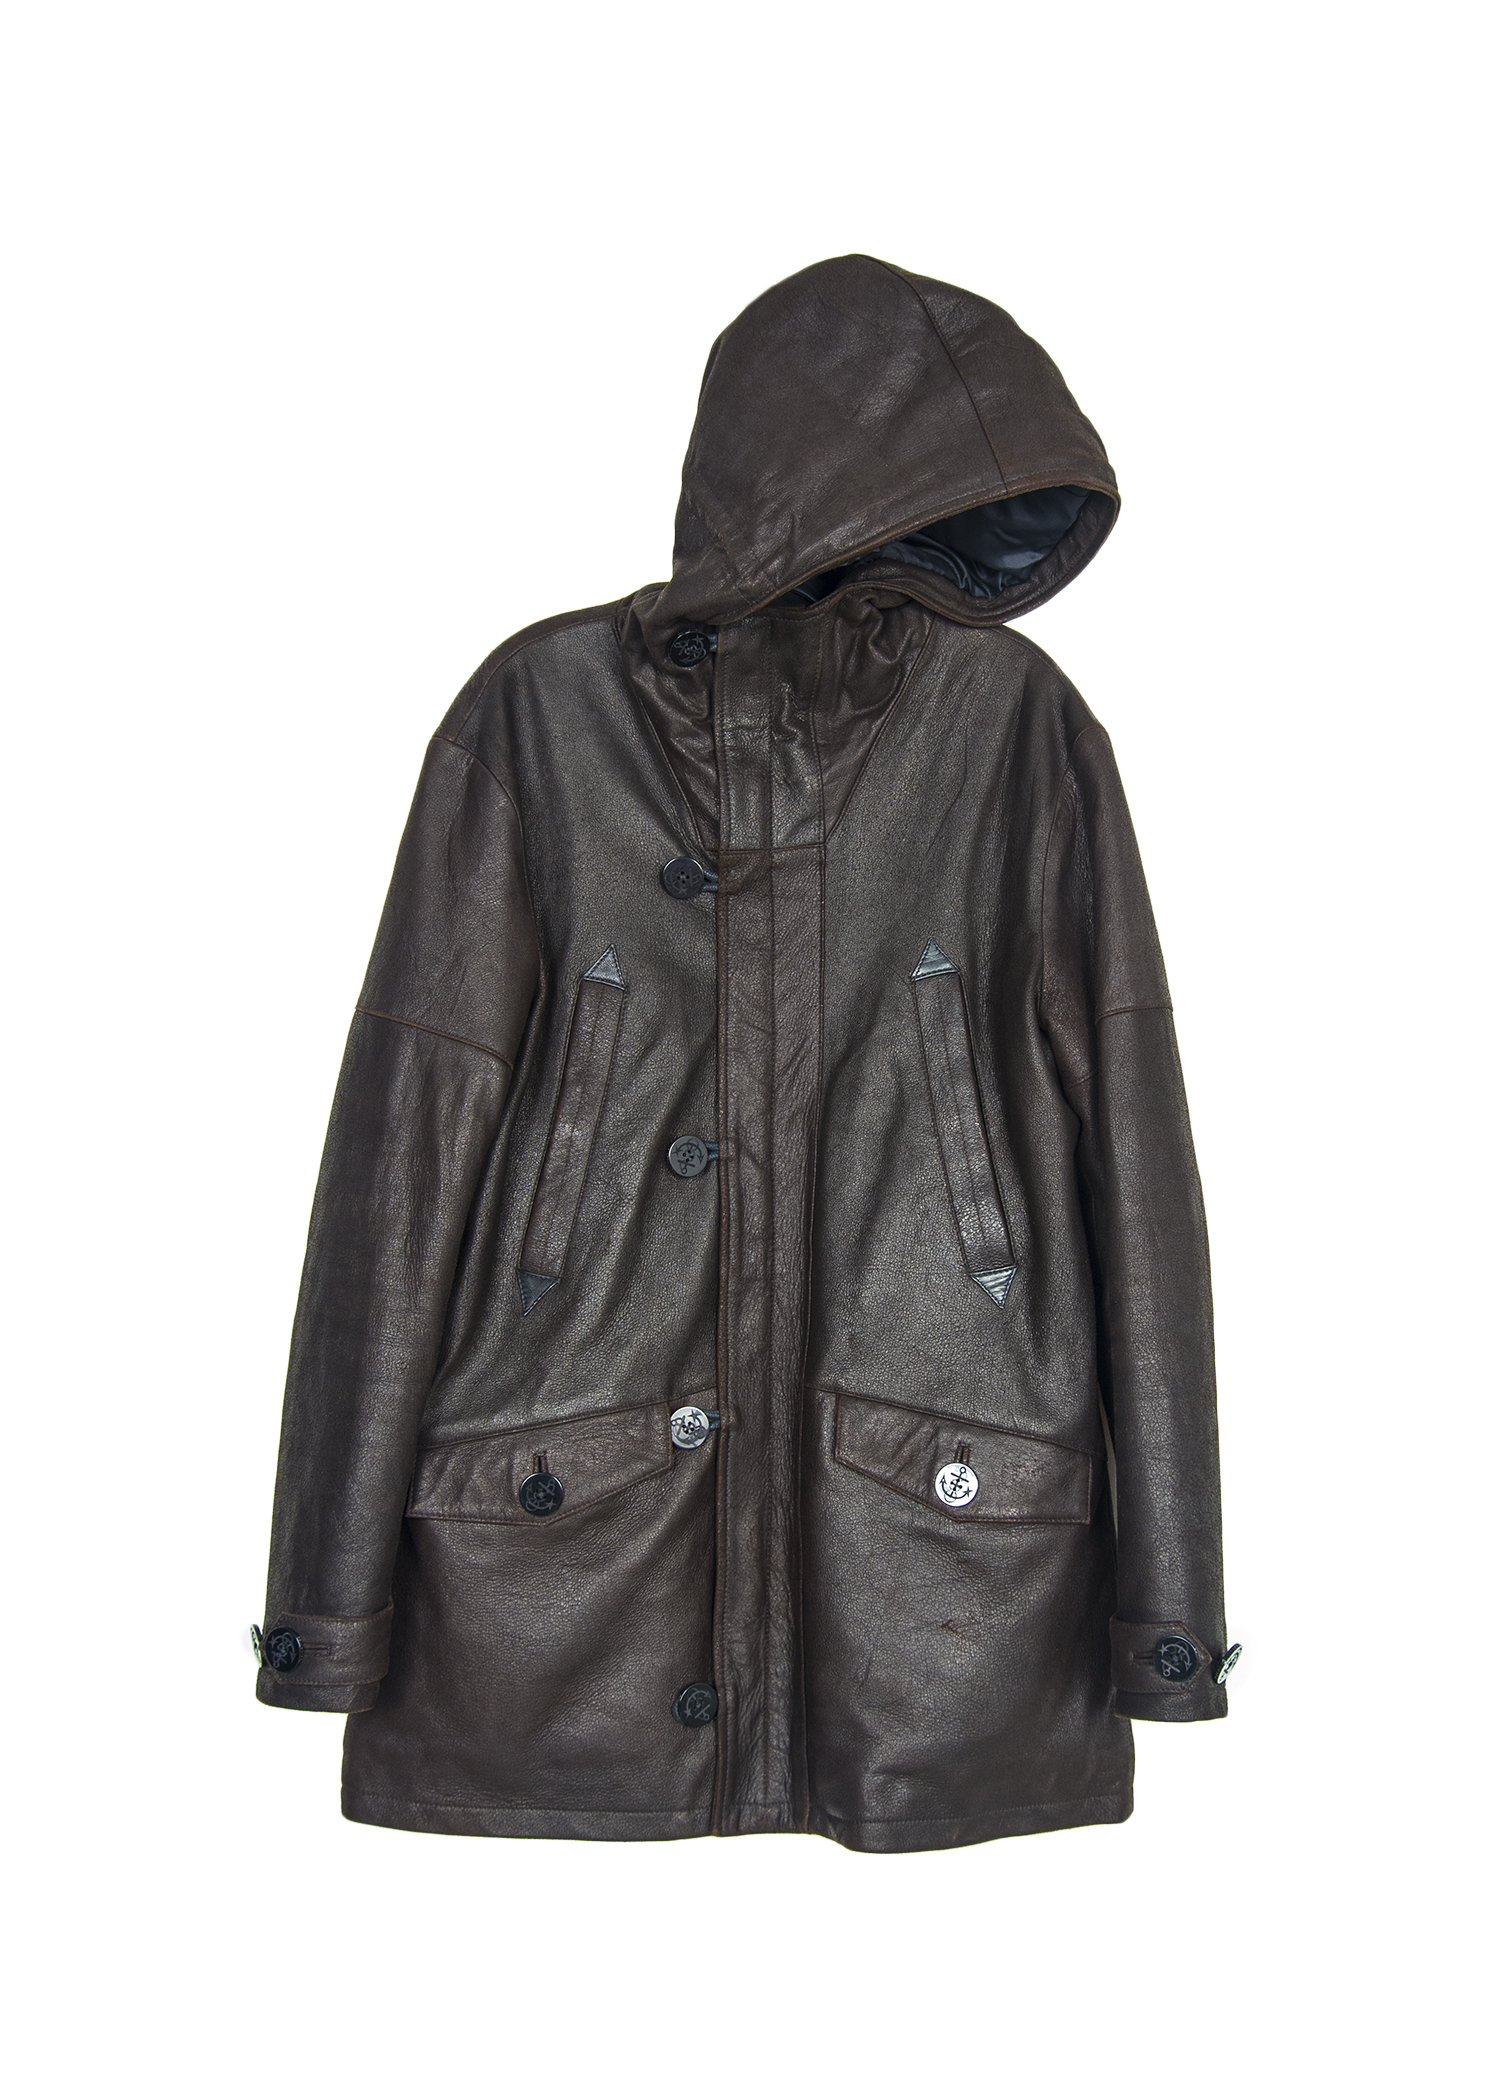 "40/42 ARMANI LEATHER DUFFEL COAT ""ARMANI-LJKT05"""